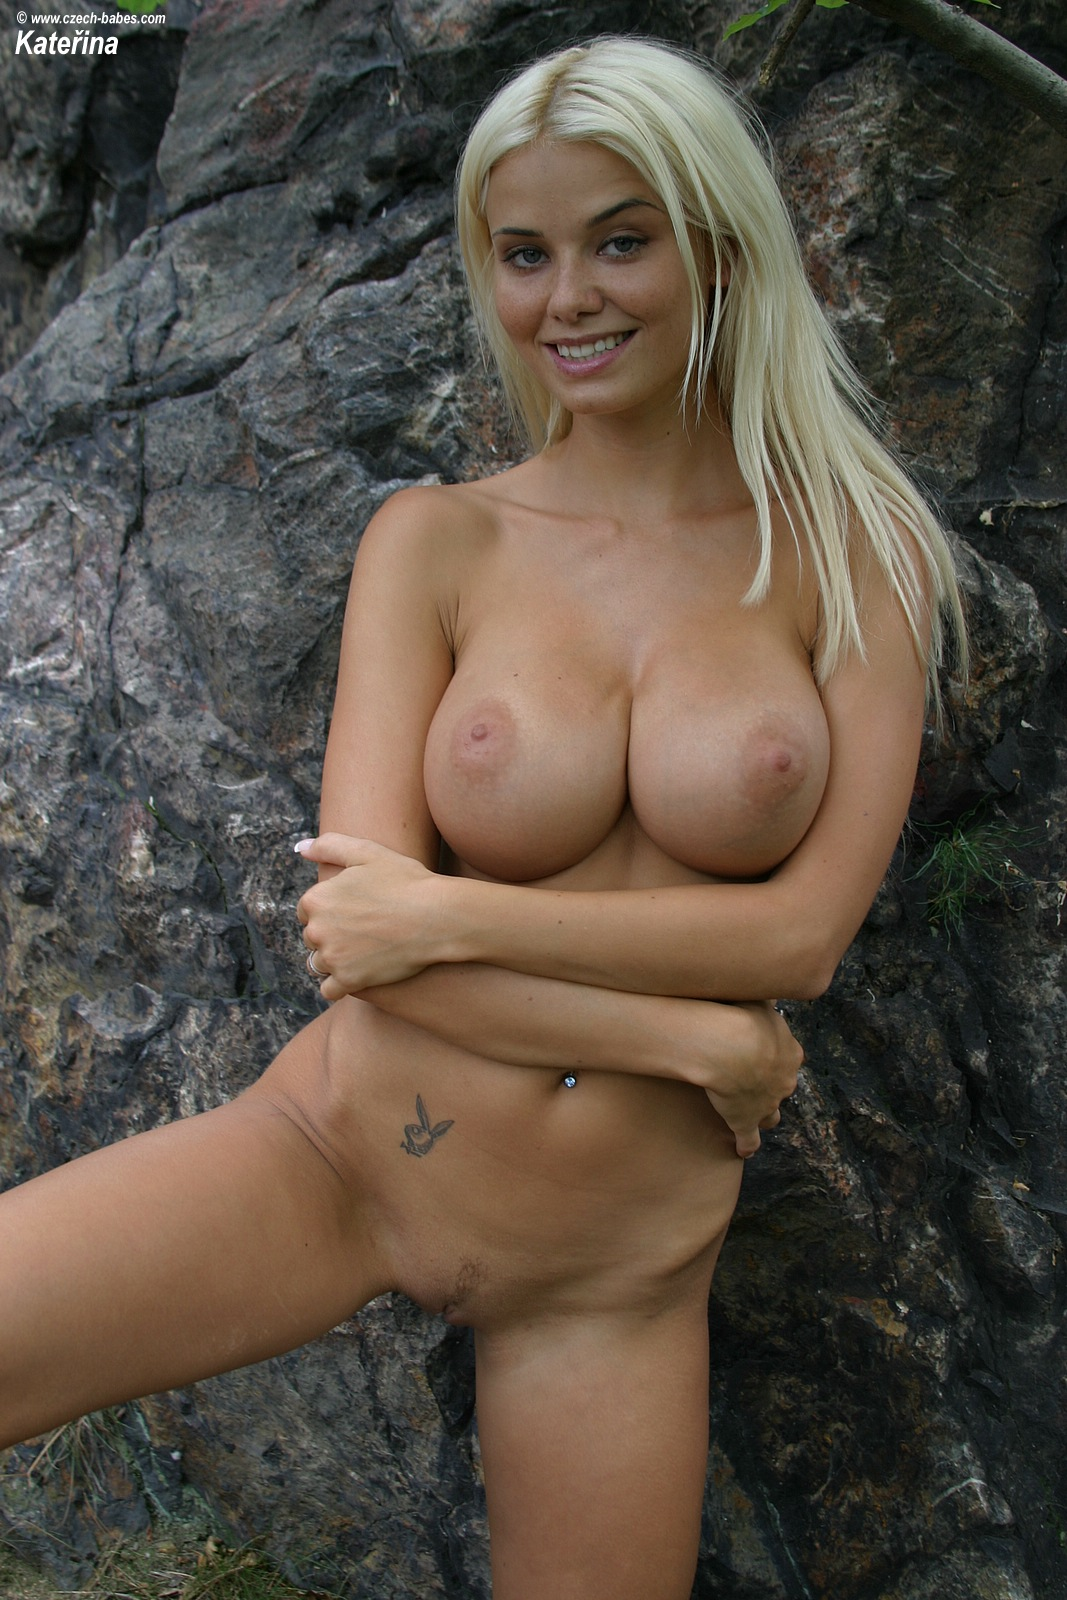 katerina-blonde-boobs-flip-flops-outdoor-naked-18